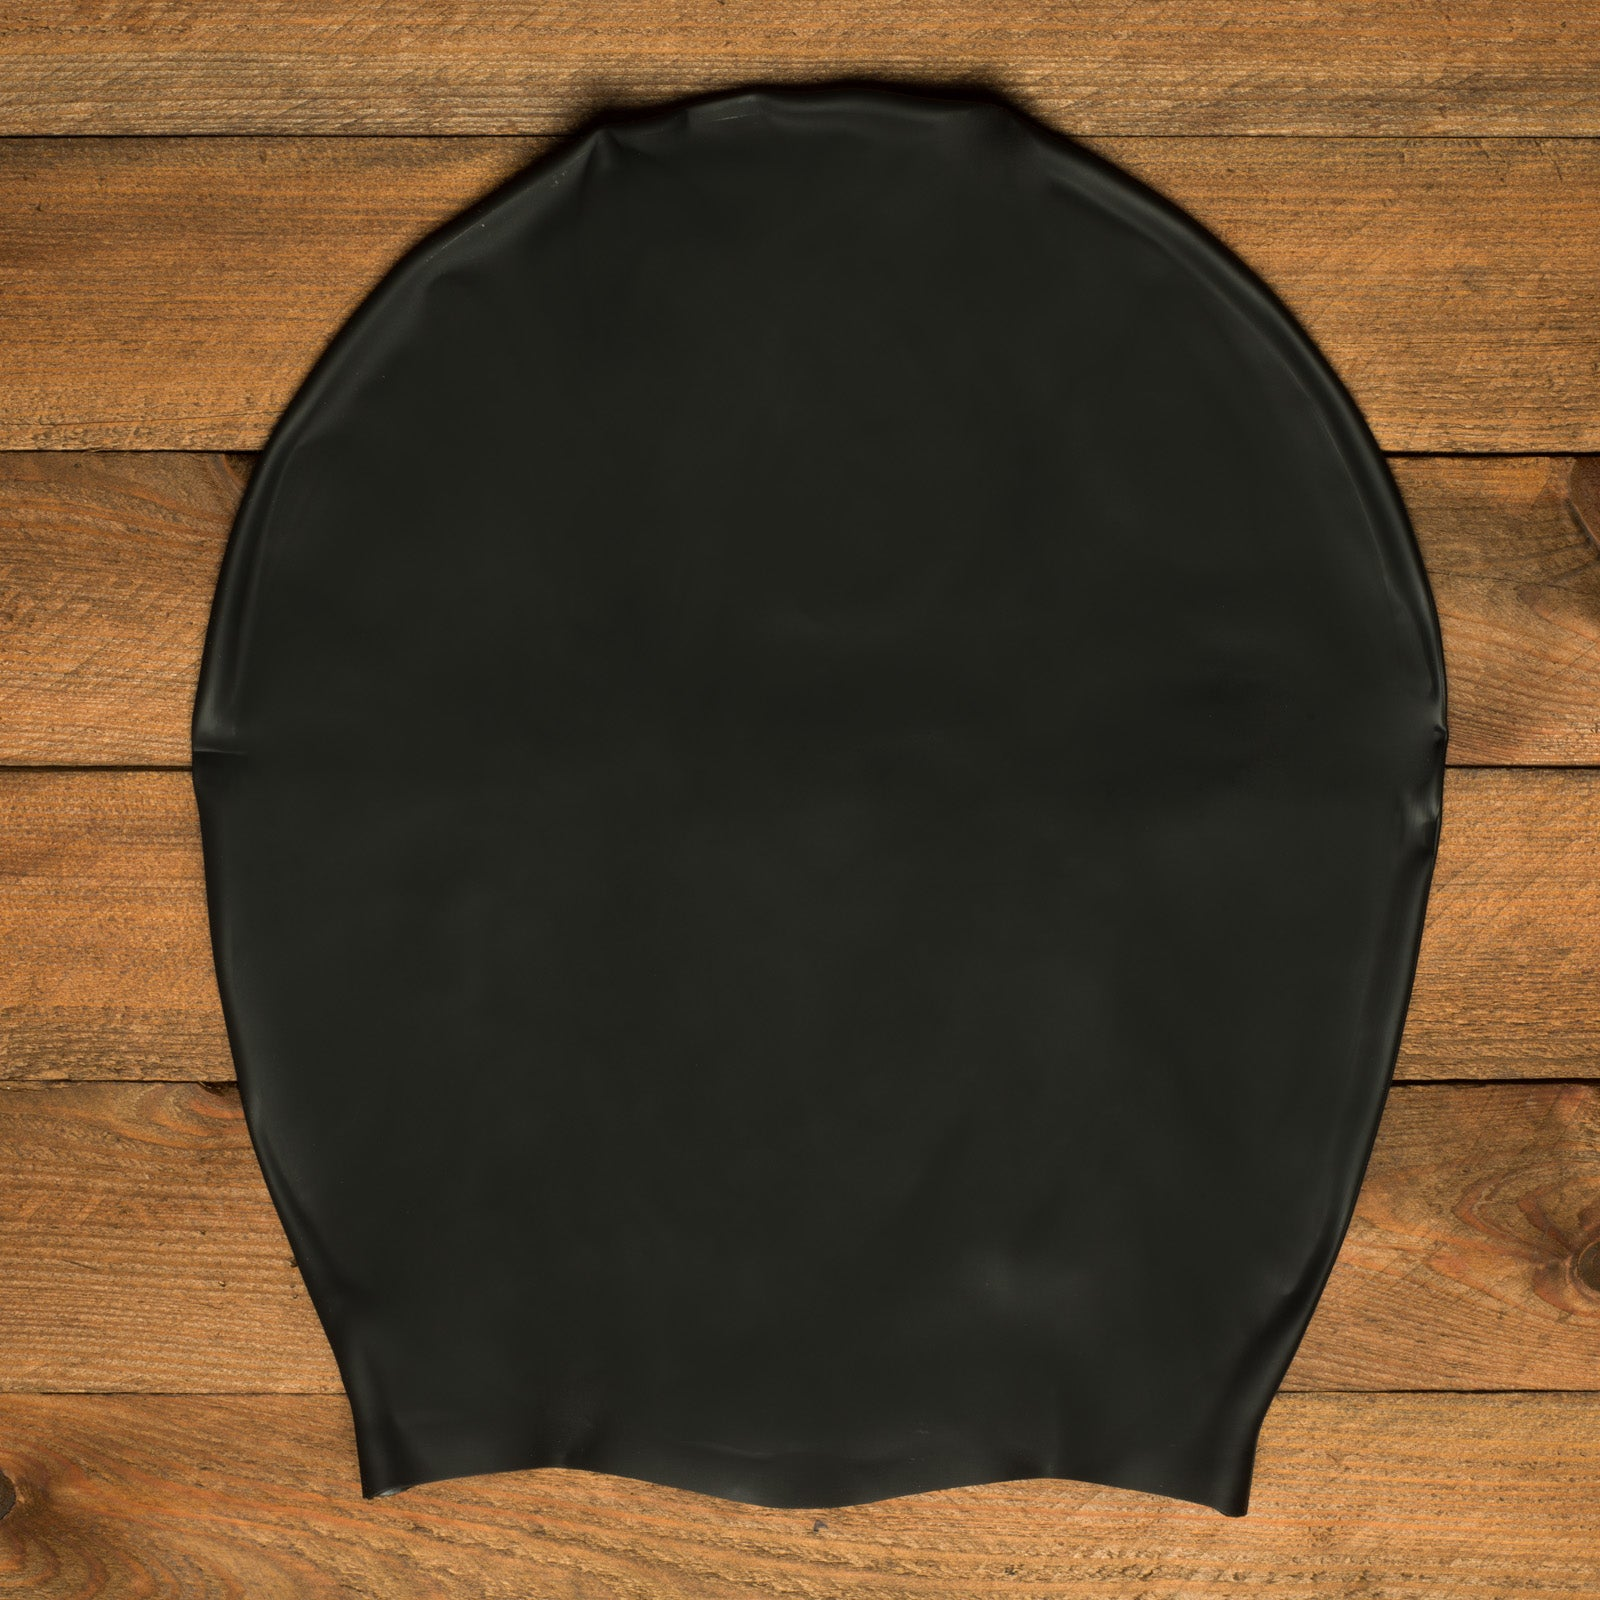 DreadLab - Extra Large Swim Cap (Plain Black - NO LOGO) Dreadlocks/Braids/Weaves/Extensions